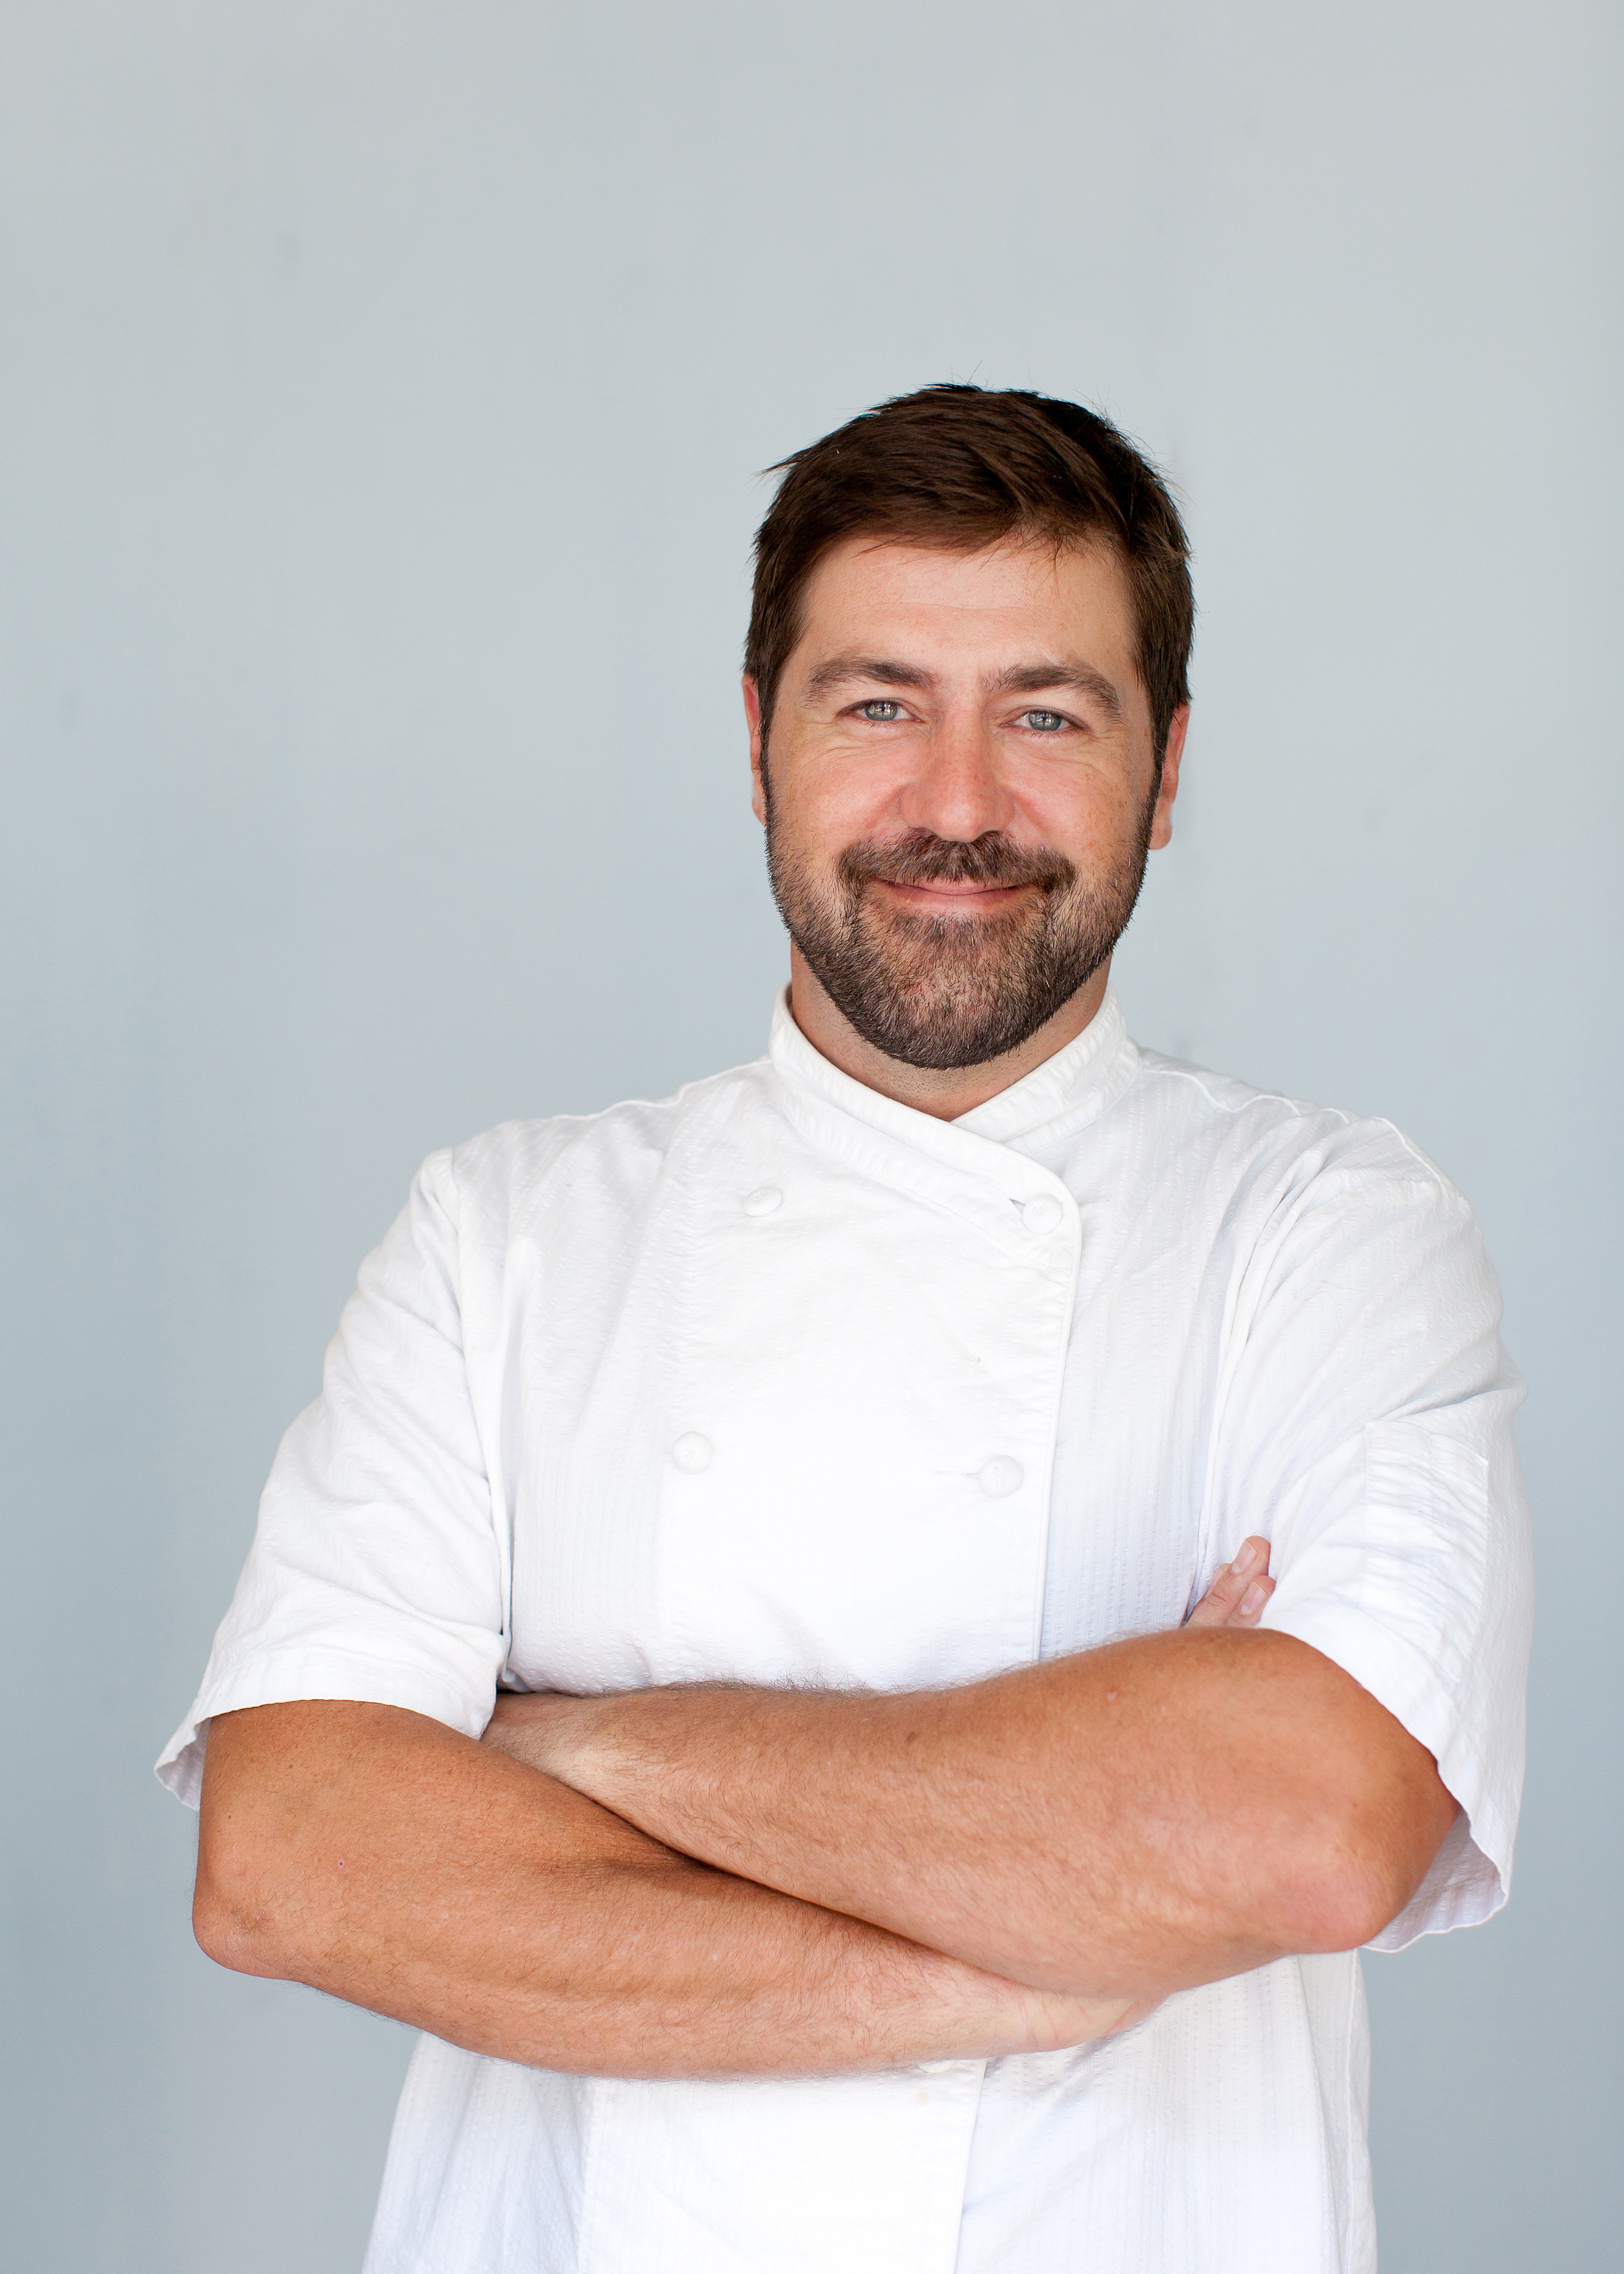 """<div class=""""meta image-caption""""><div class=""""origin-logo origin-image ktrk""""><span>KTRK</span></div><span class=""""caption-text"""">Mike Lata is the chef/owner of FIG and The Ordinary in Charleston, SC. (Gately Williams)</span></div>"""